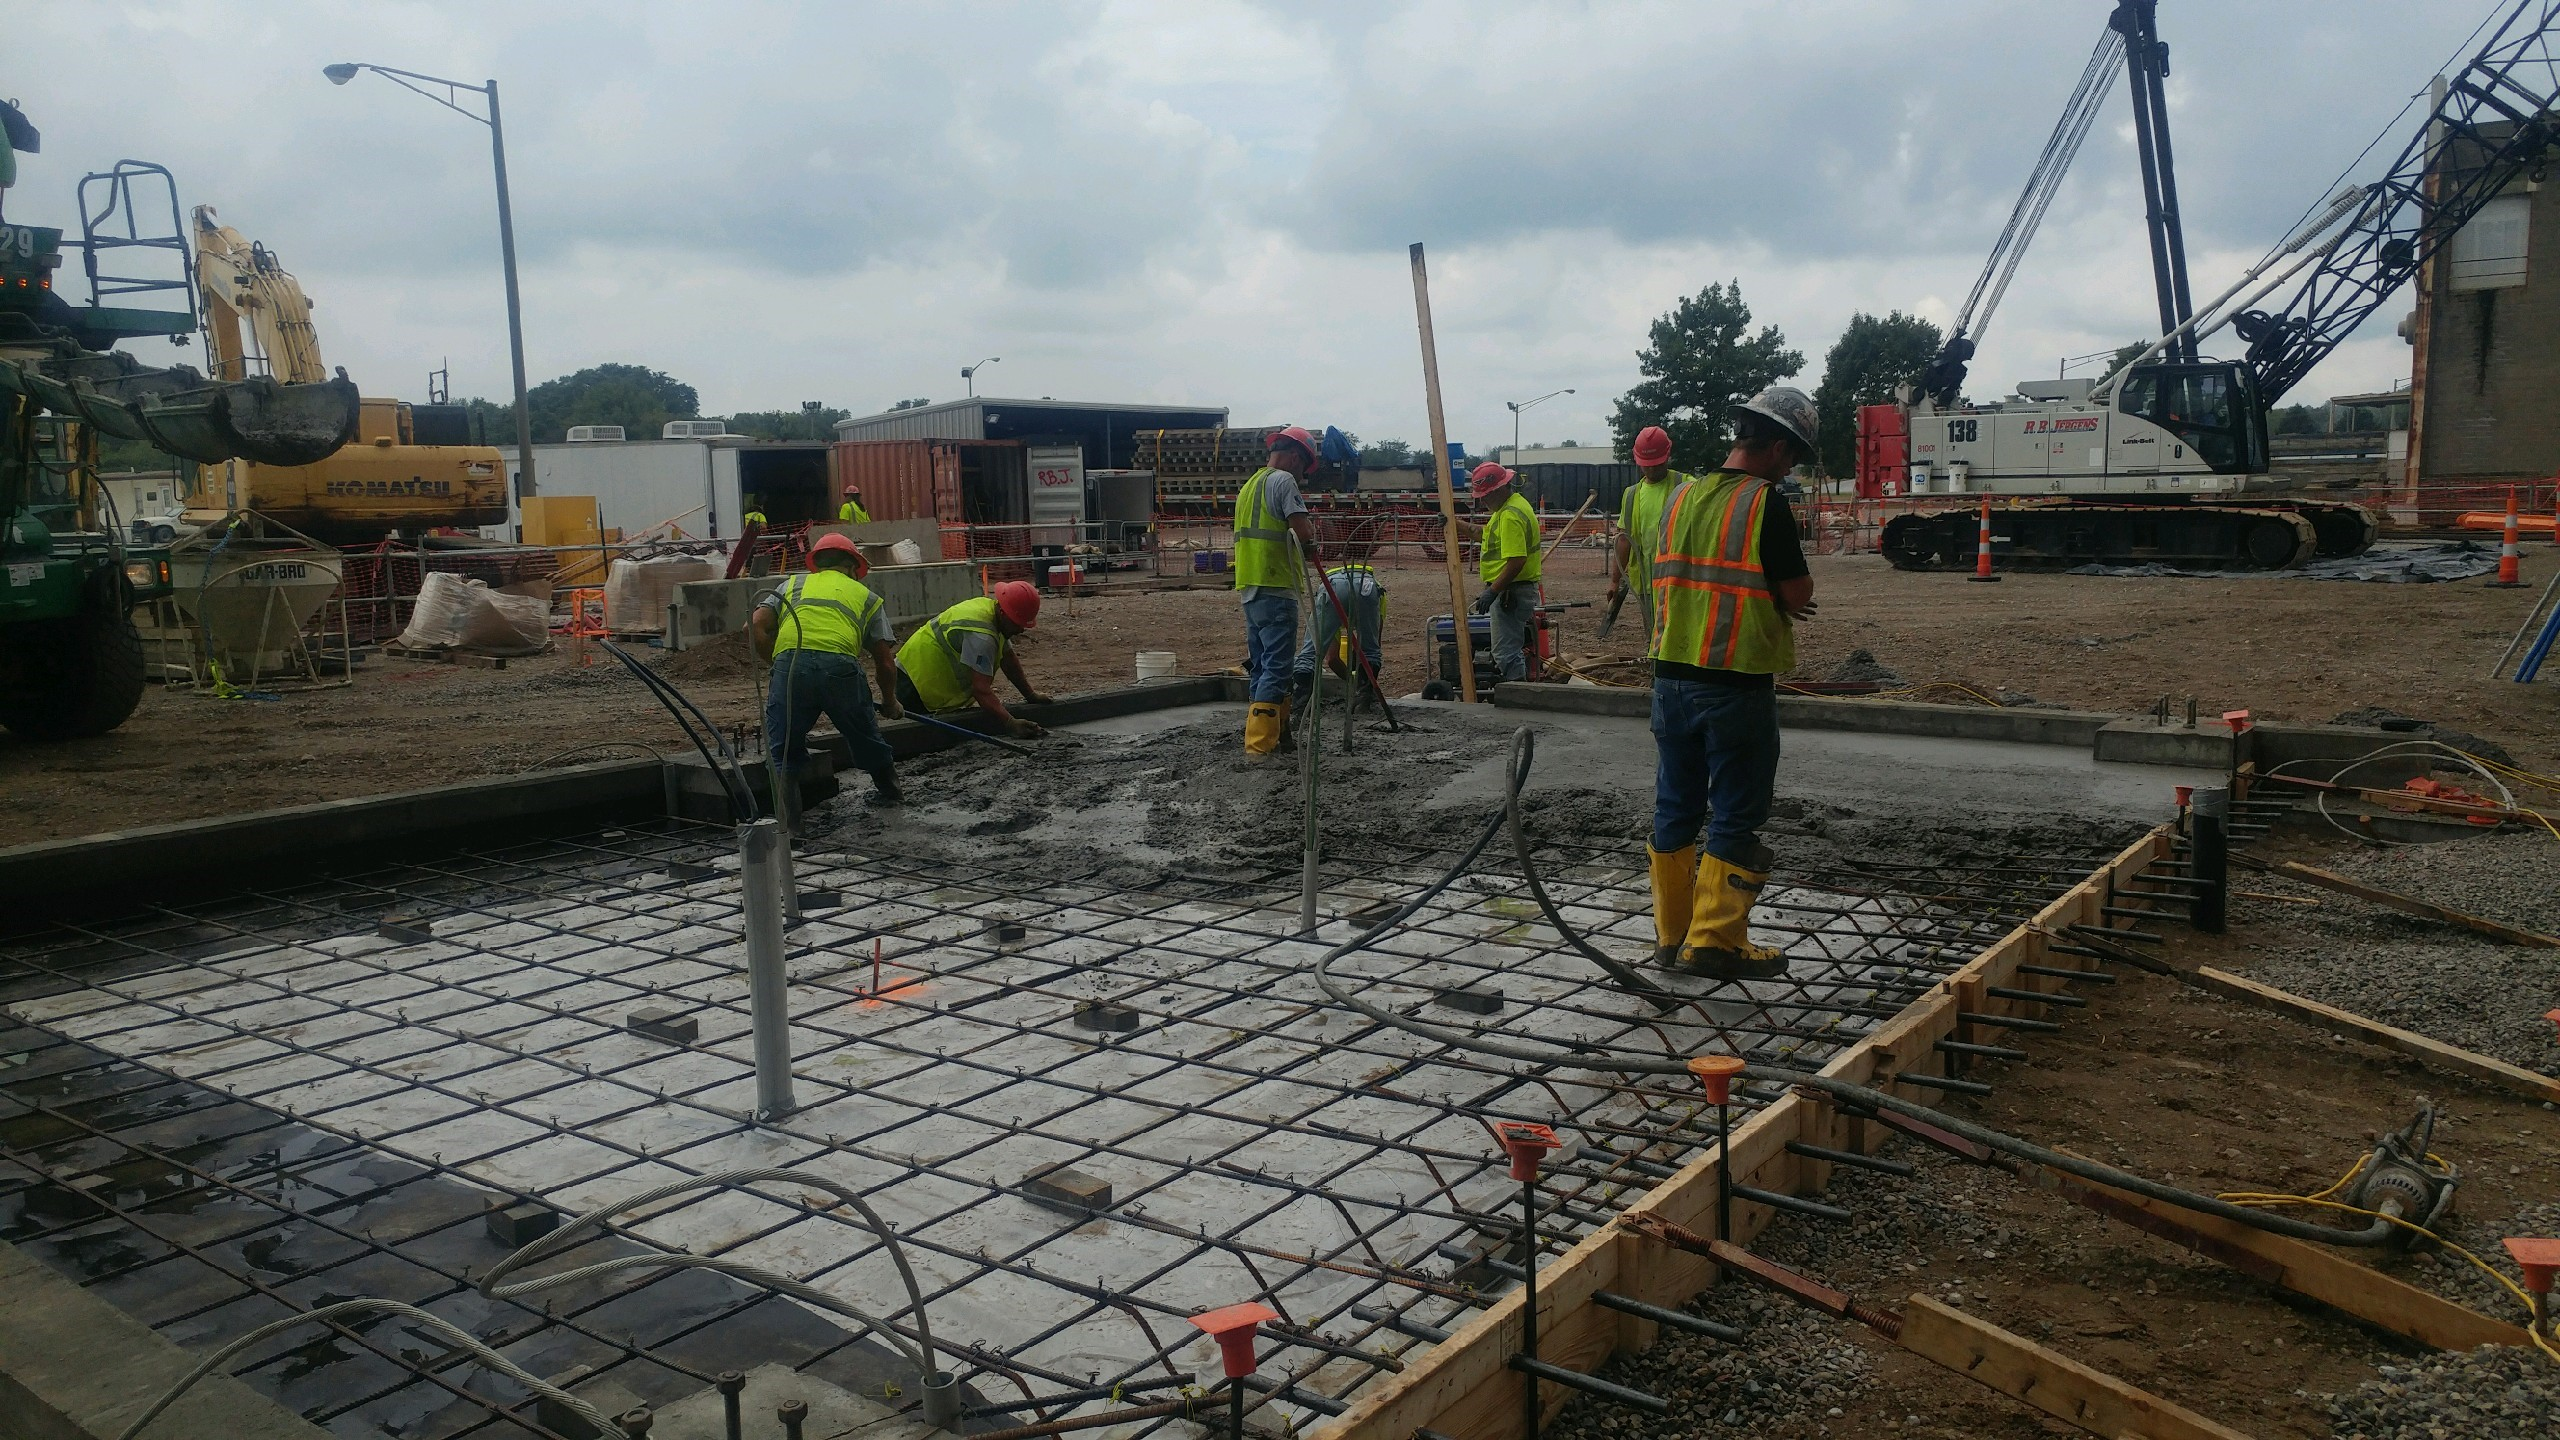 8 workers in high visibility vests spreading freely poured concrete